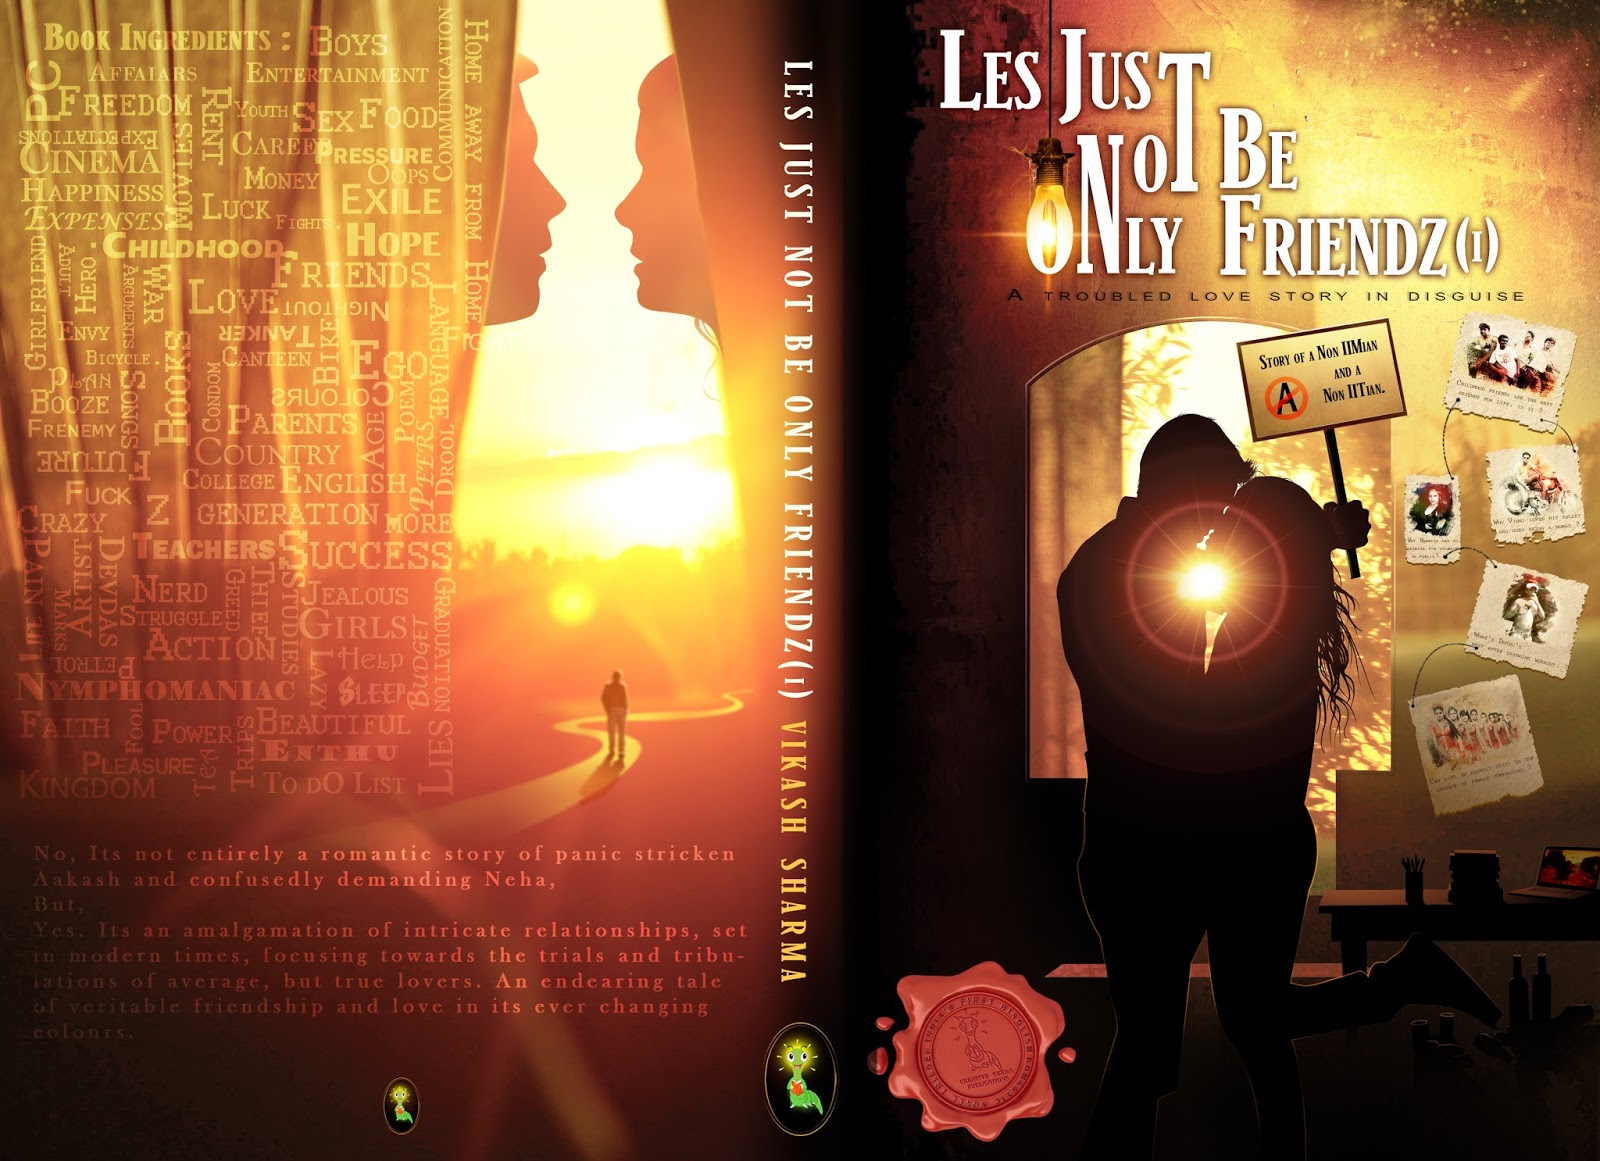 Les Jus Not Be Only Friendz (1) By Vikash Sharma